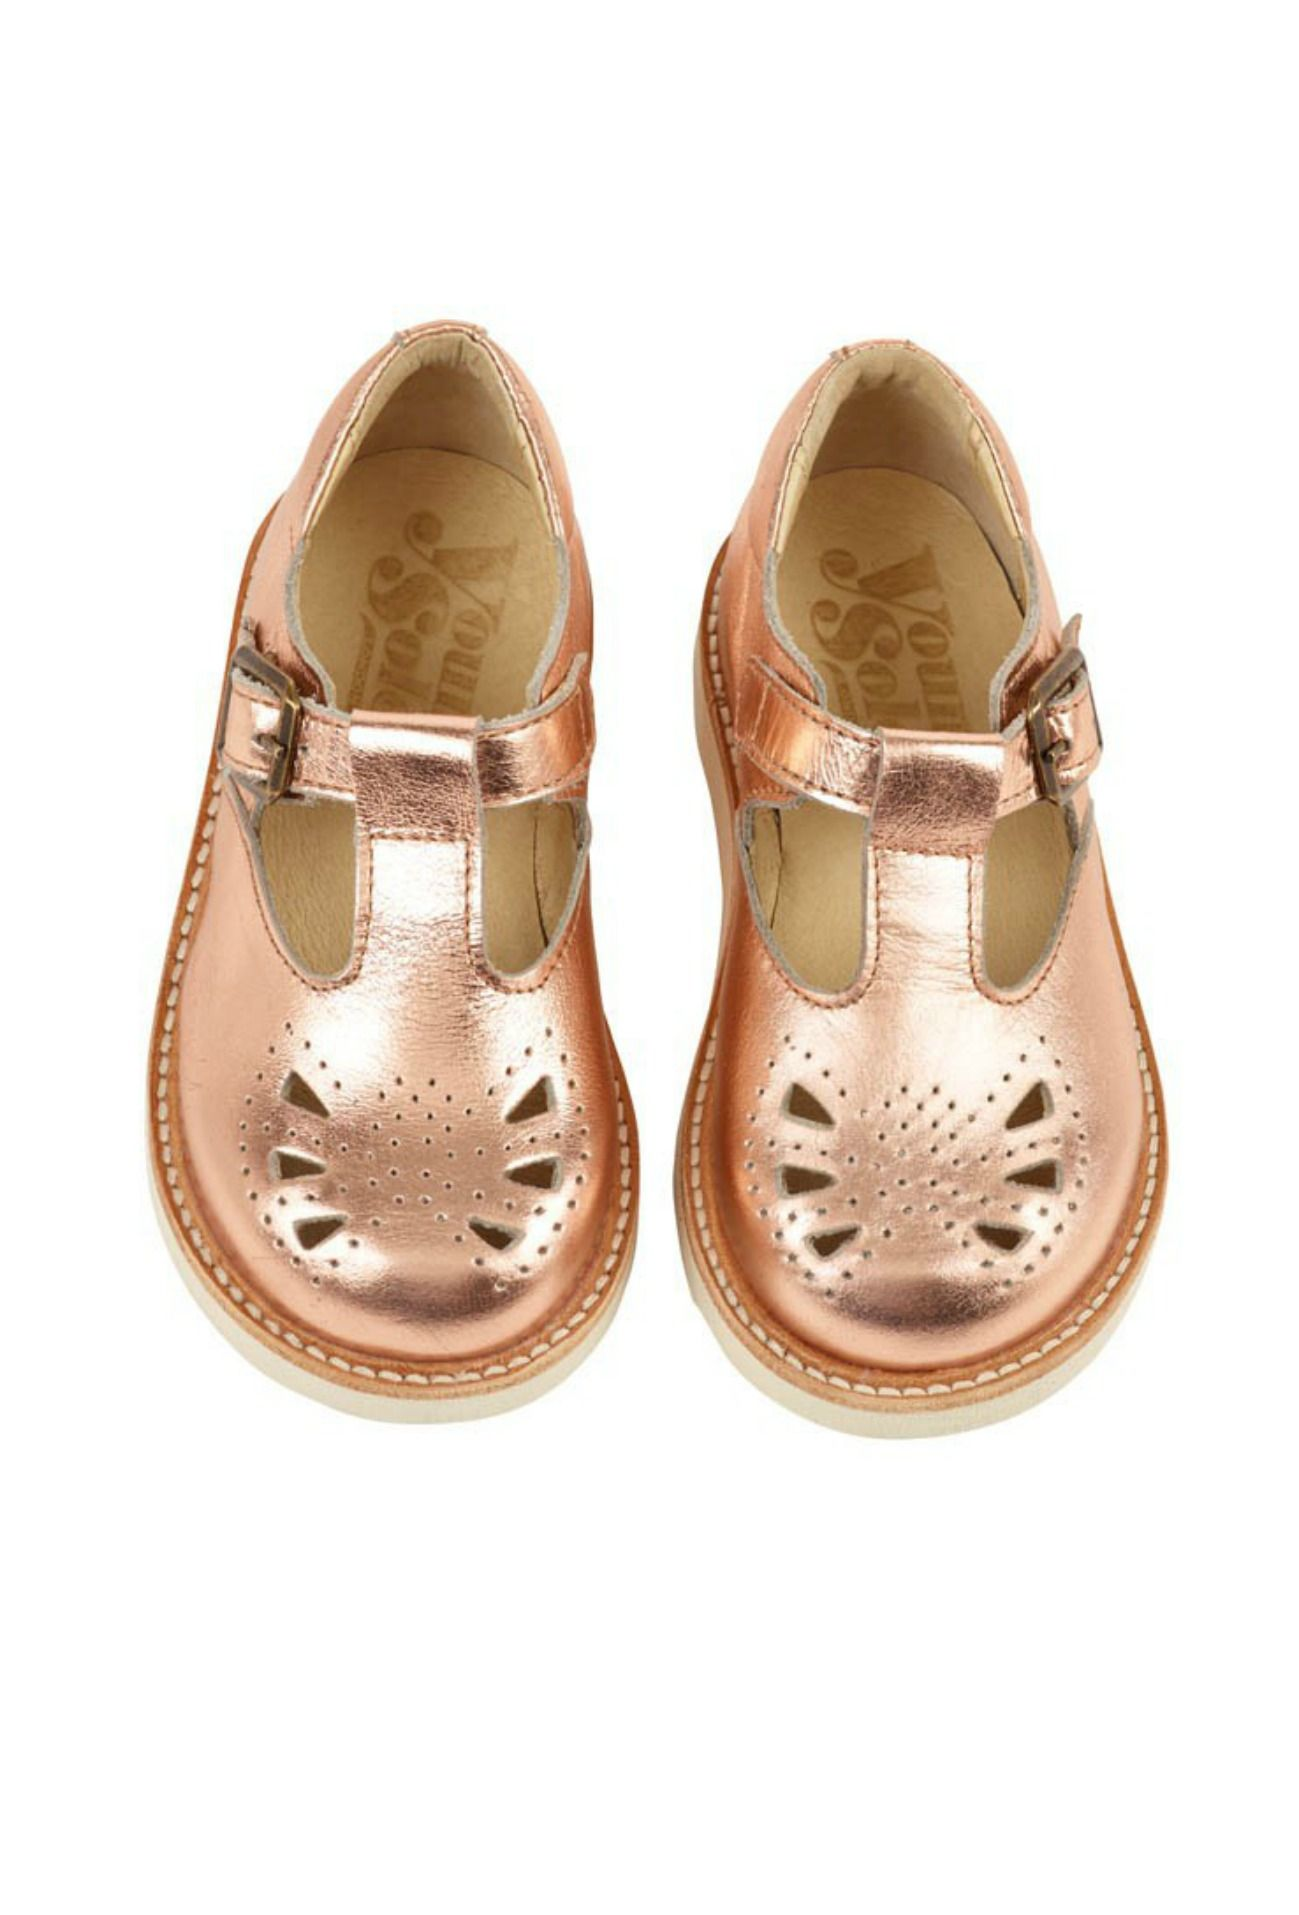 Rosie T-Bar Shoes   Young Soles   T